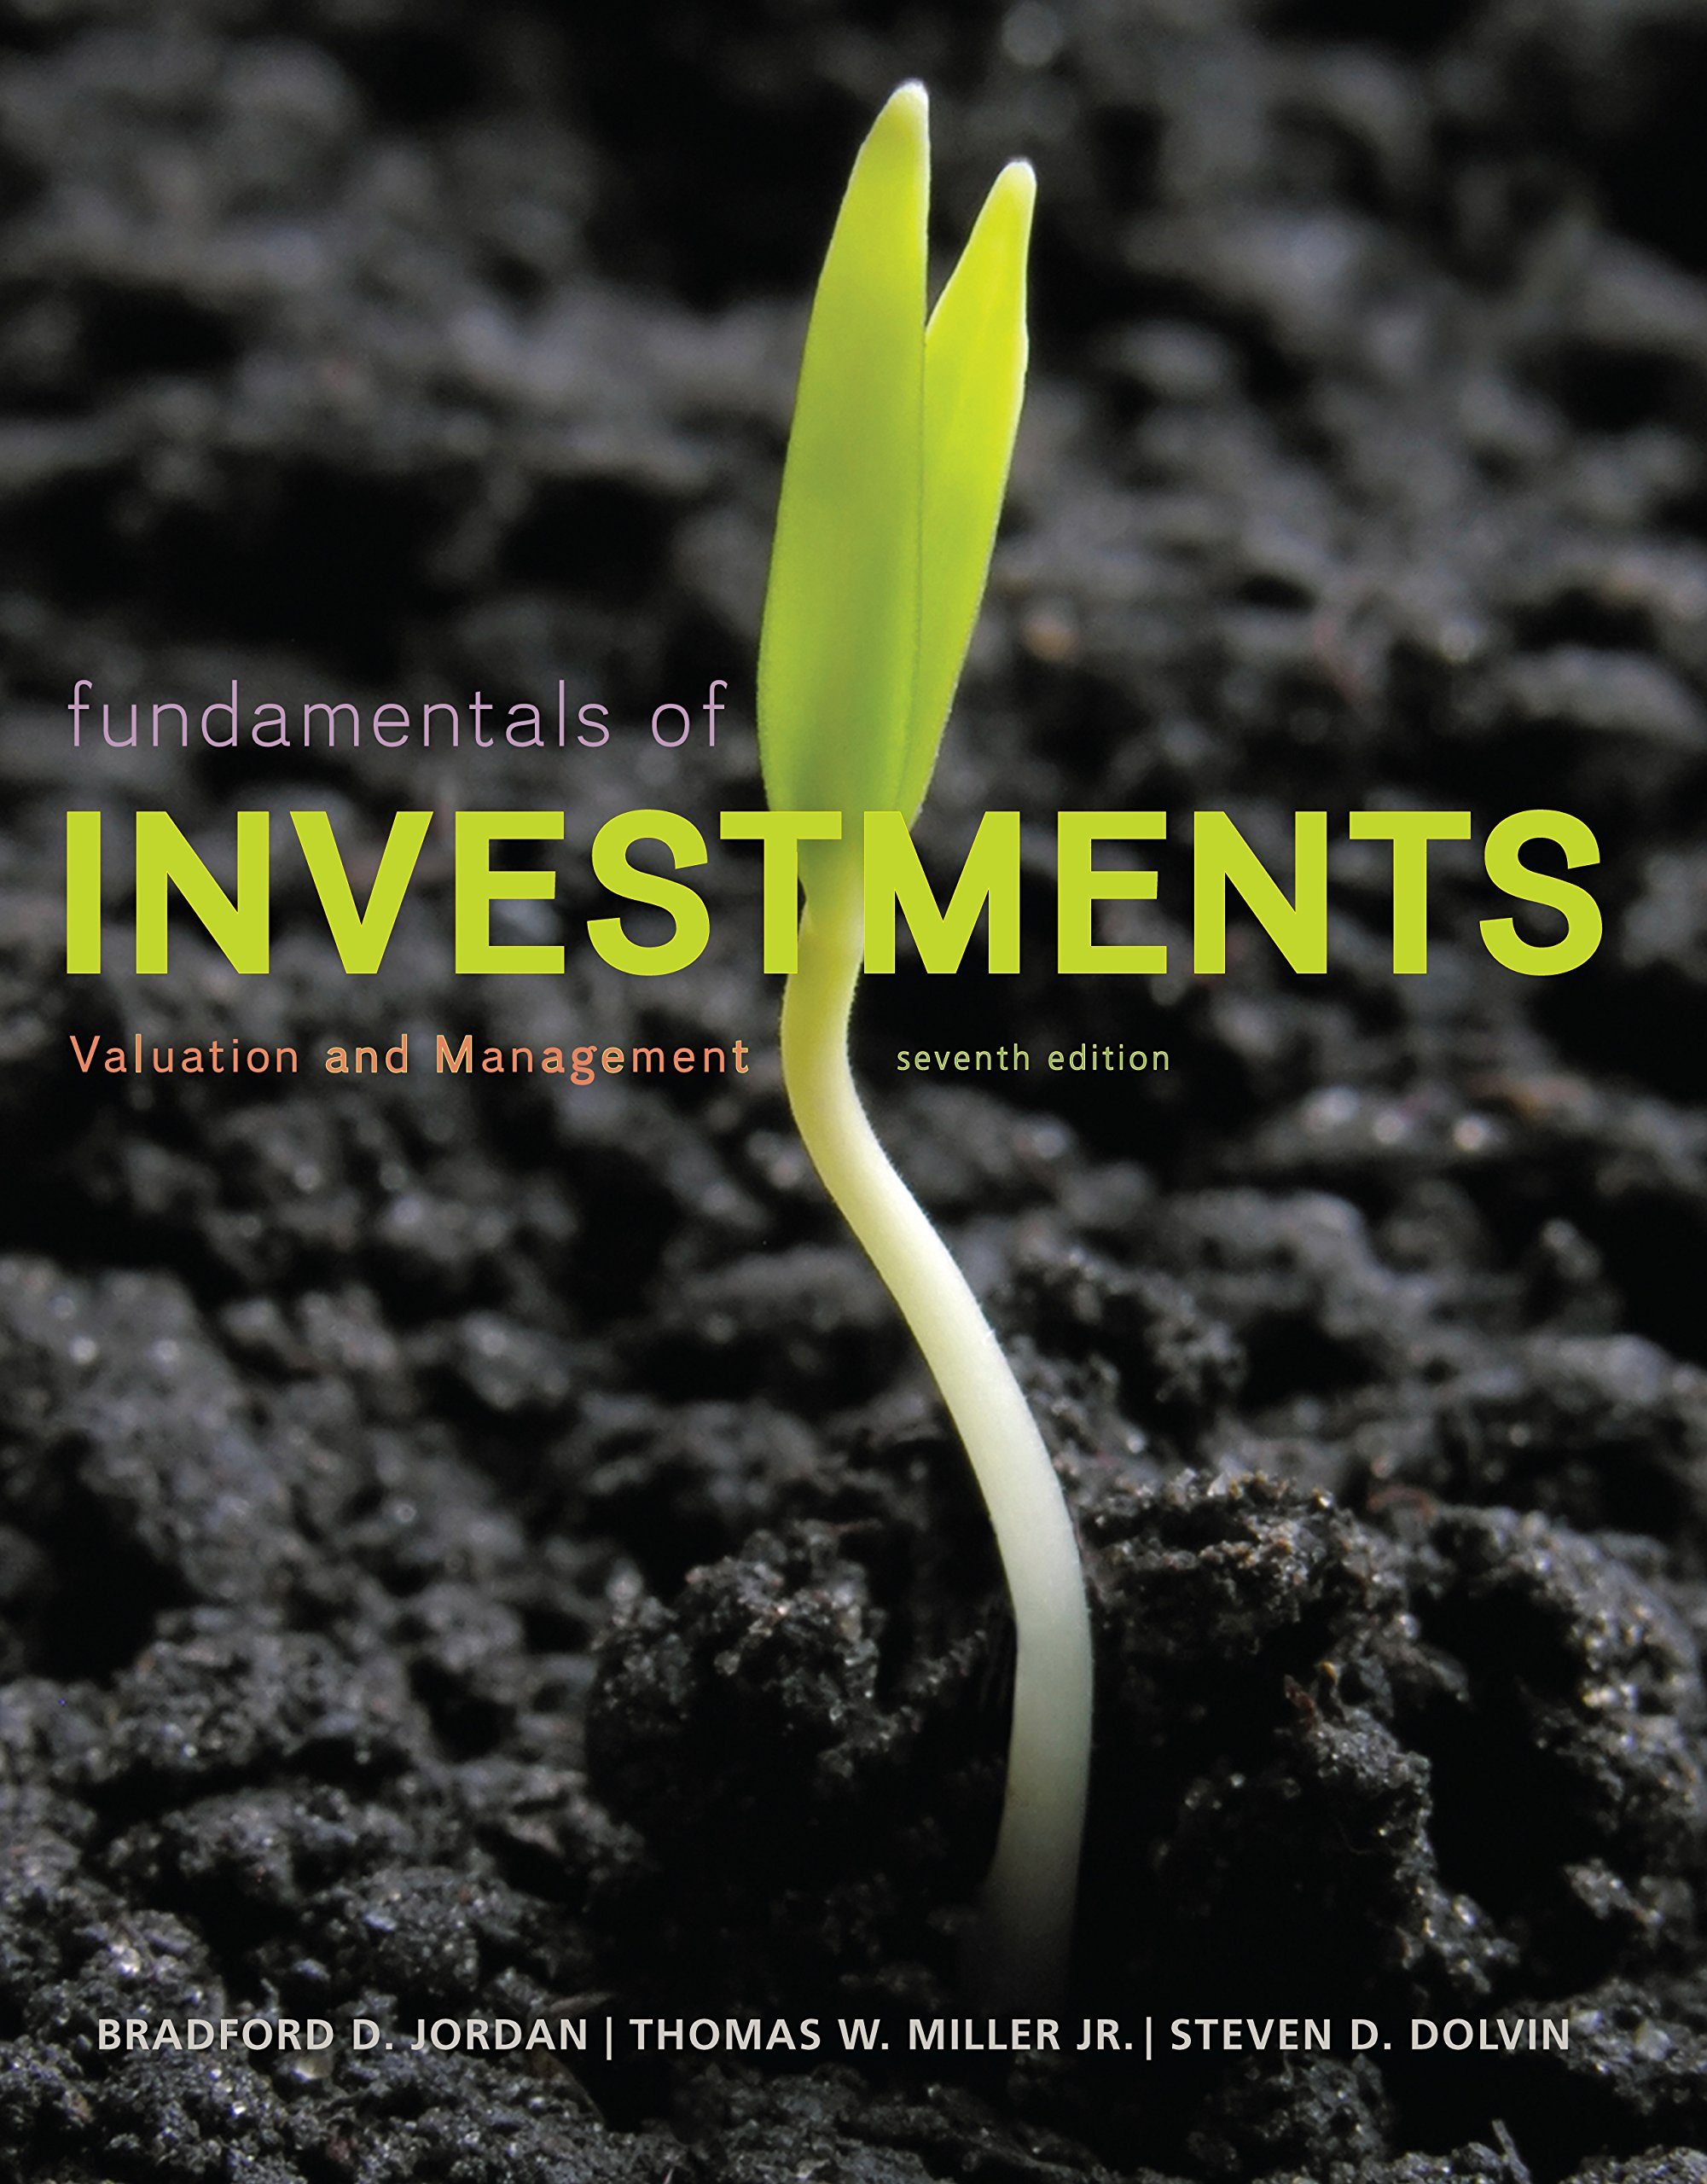 EBook Online Access for Fundamentals Of Investments, 7E, With Access Code For Connect Plus (McGraw-Hill/Irwin Series in Finance, Insurance, and Real Est)